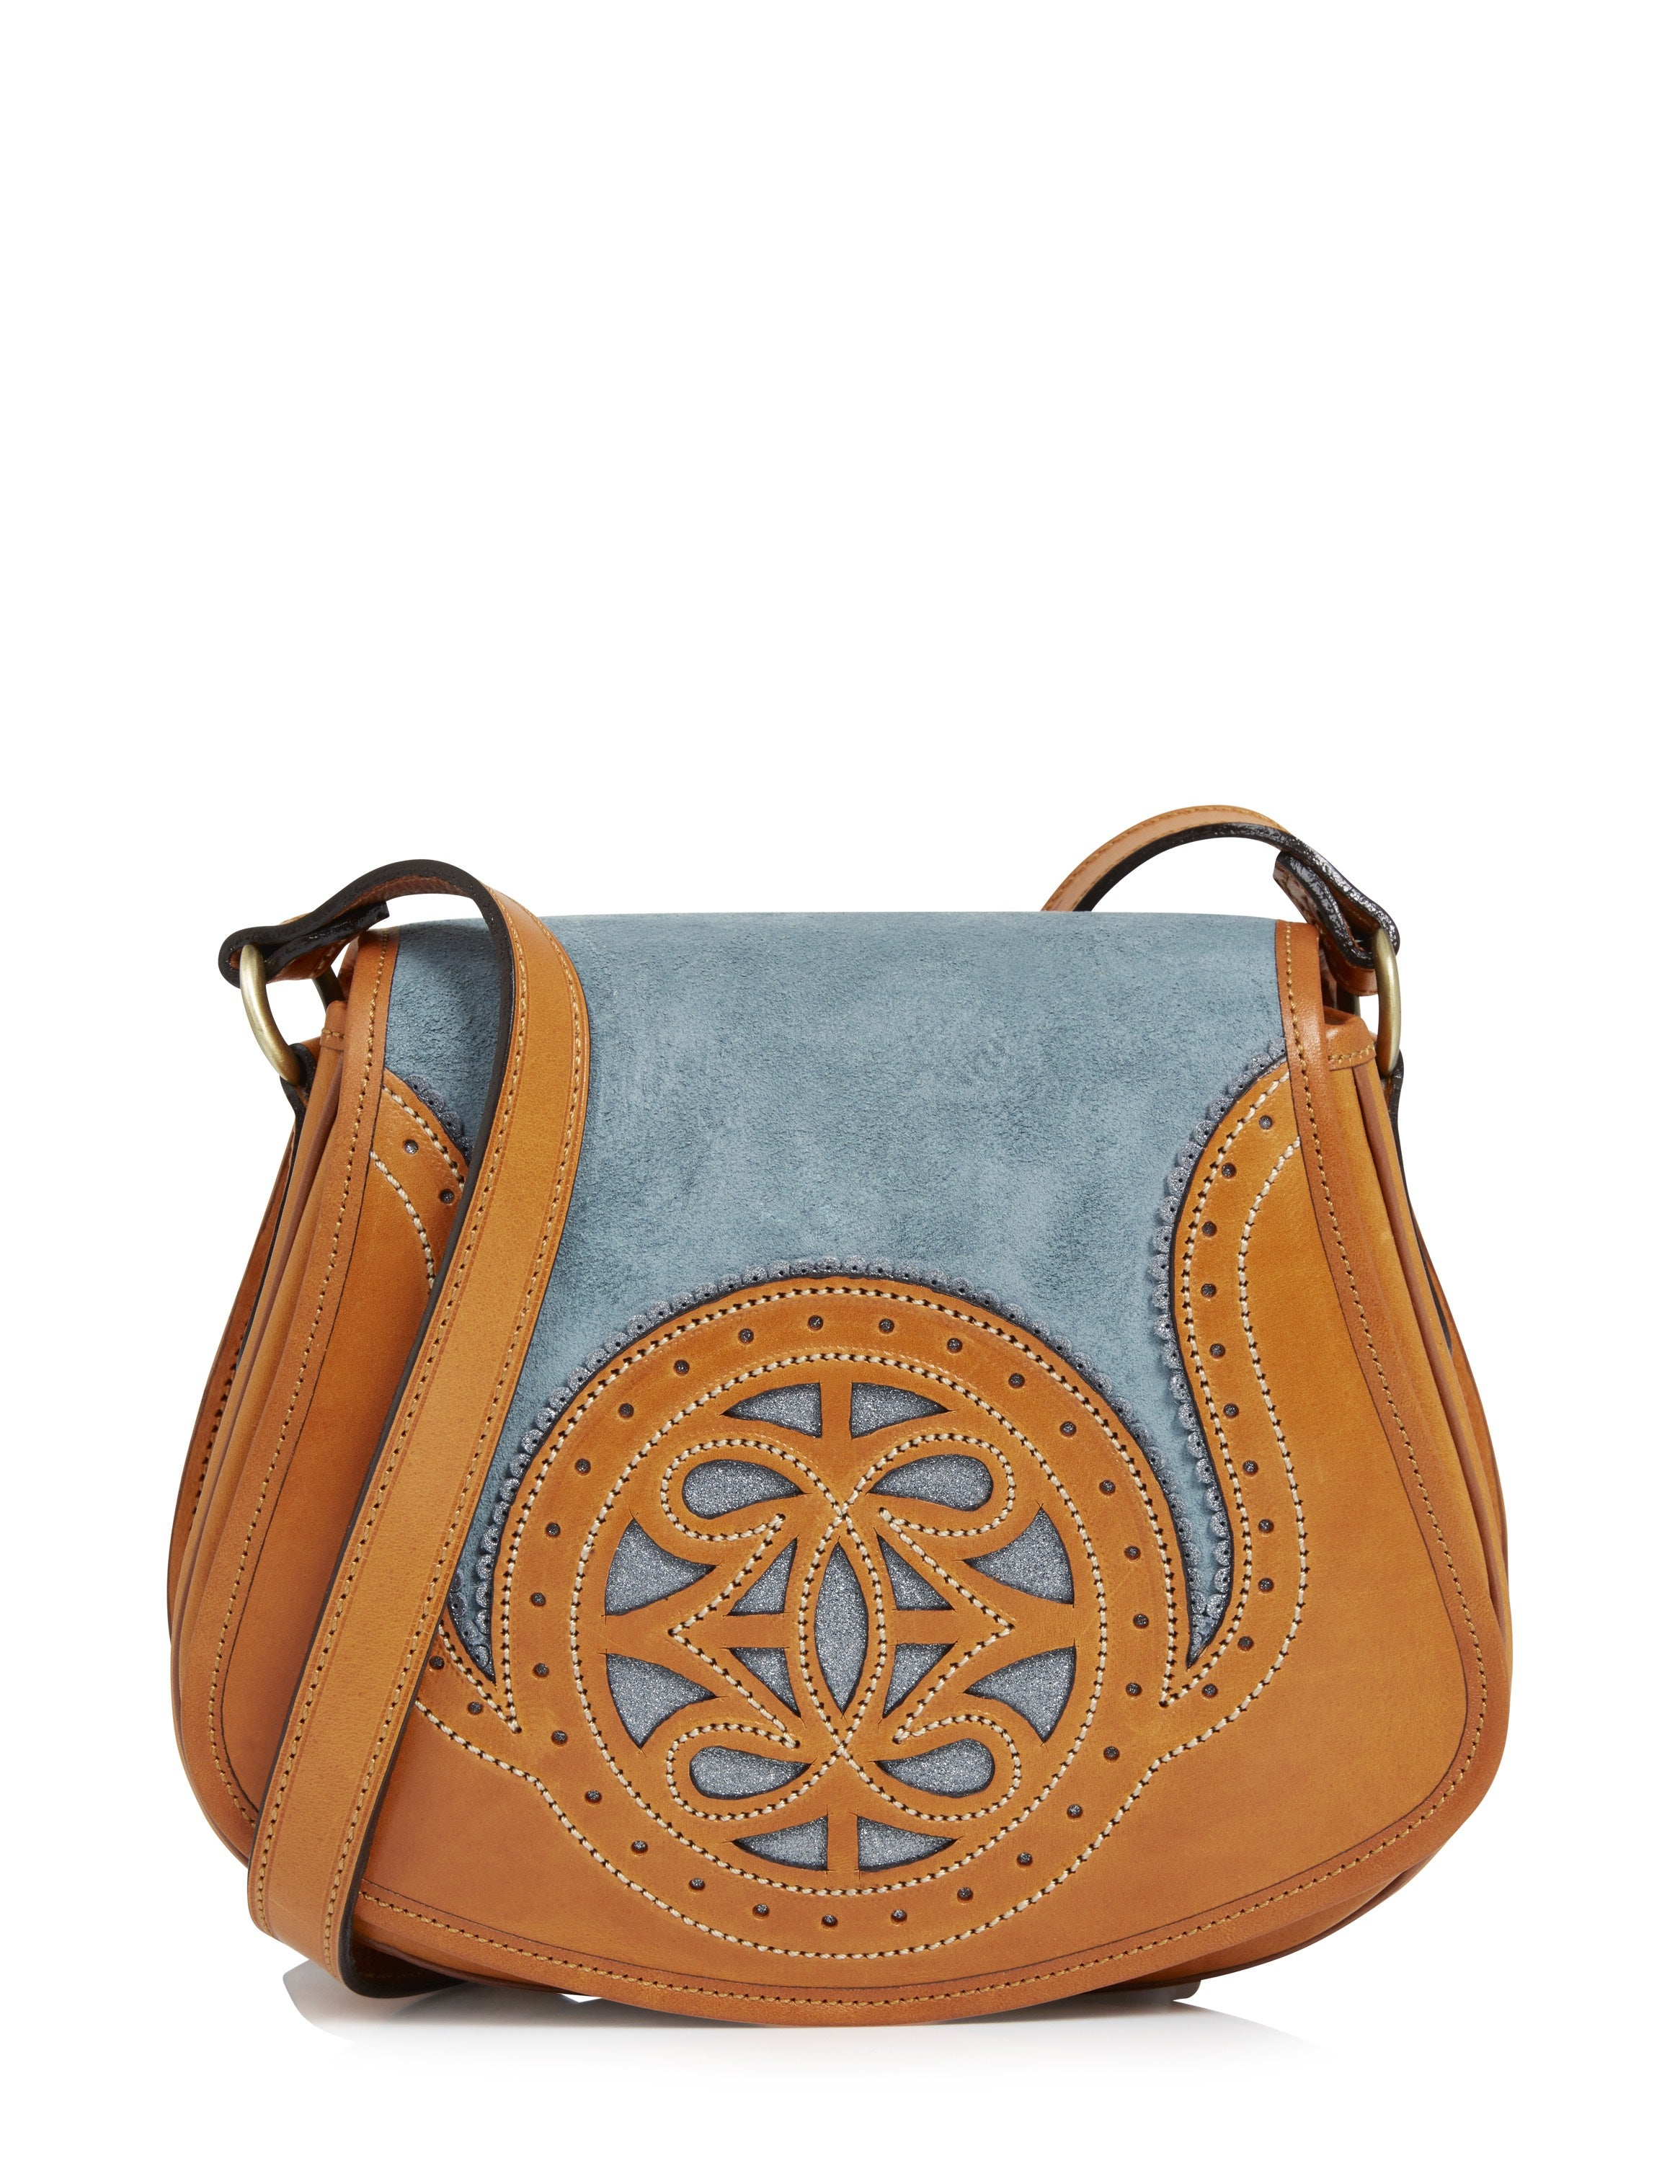 Penelope Chilvers Castanet Suede Crossbody Women's Messenger Bag